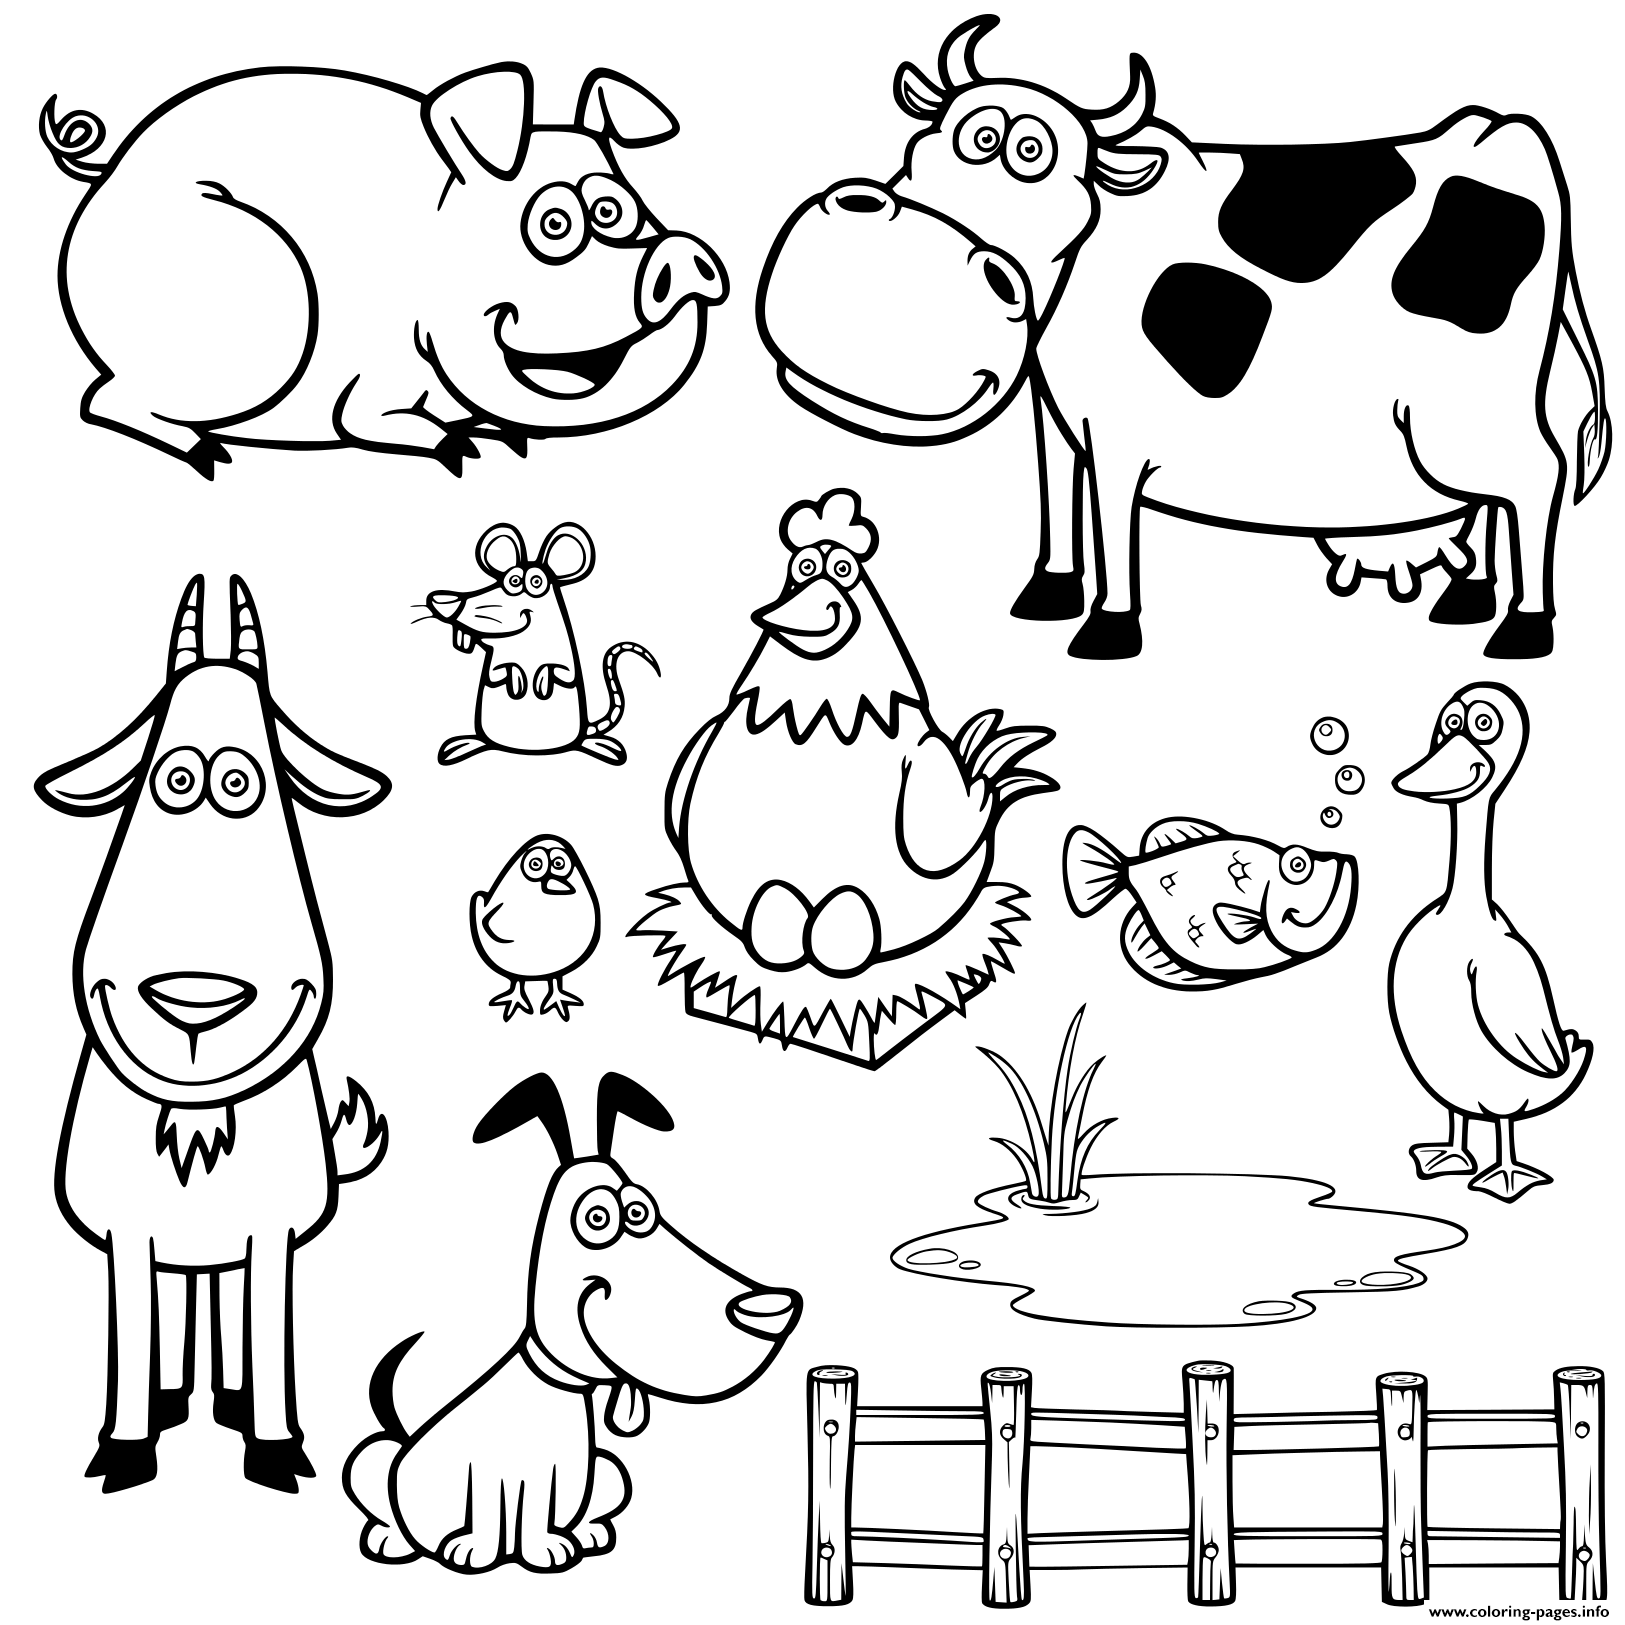 Duck coloring page. | Alphabet coloring pages, Animal coloring ... | 1625x1625